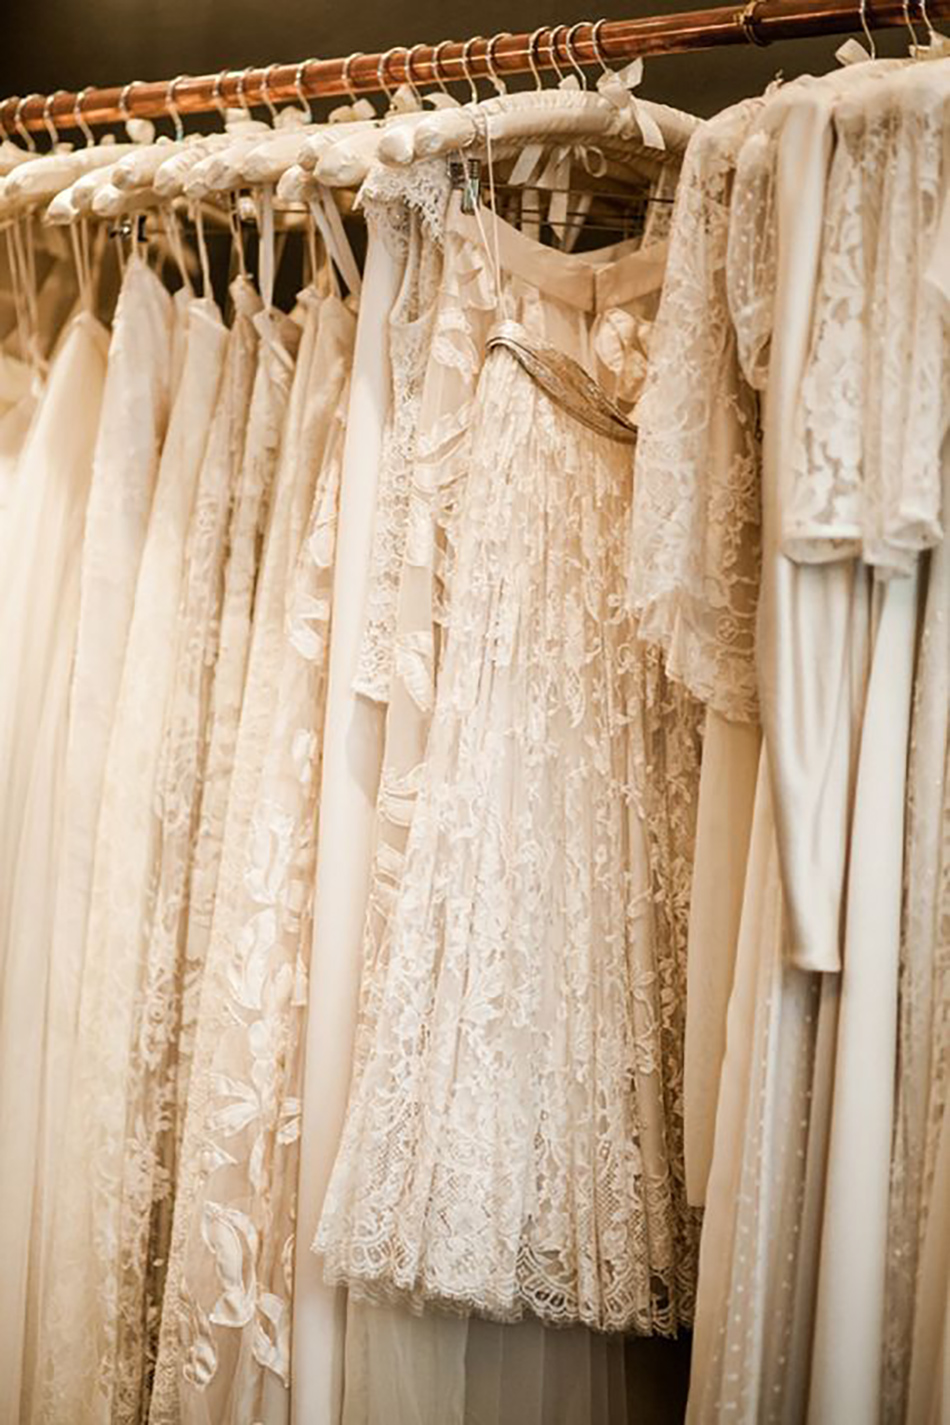 4 ways to be a charitable bride